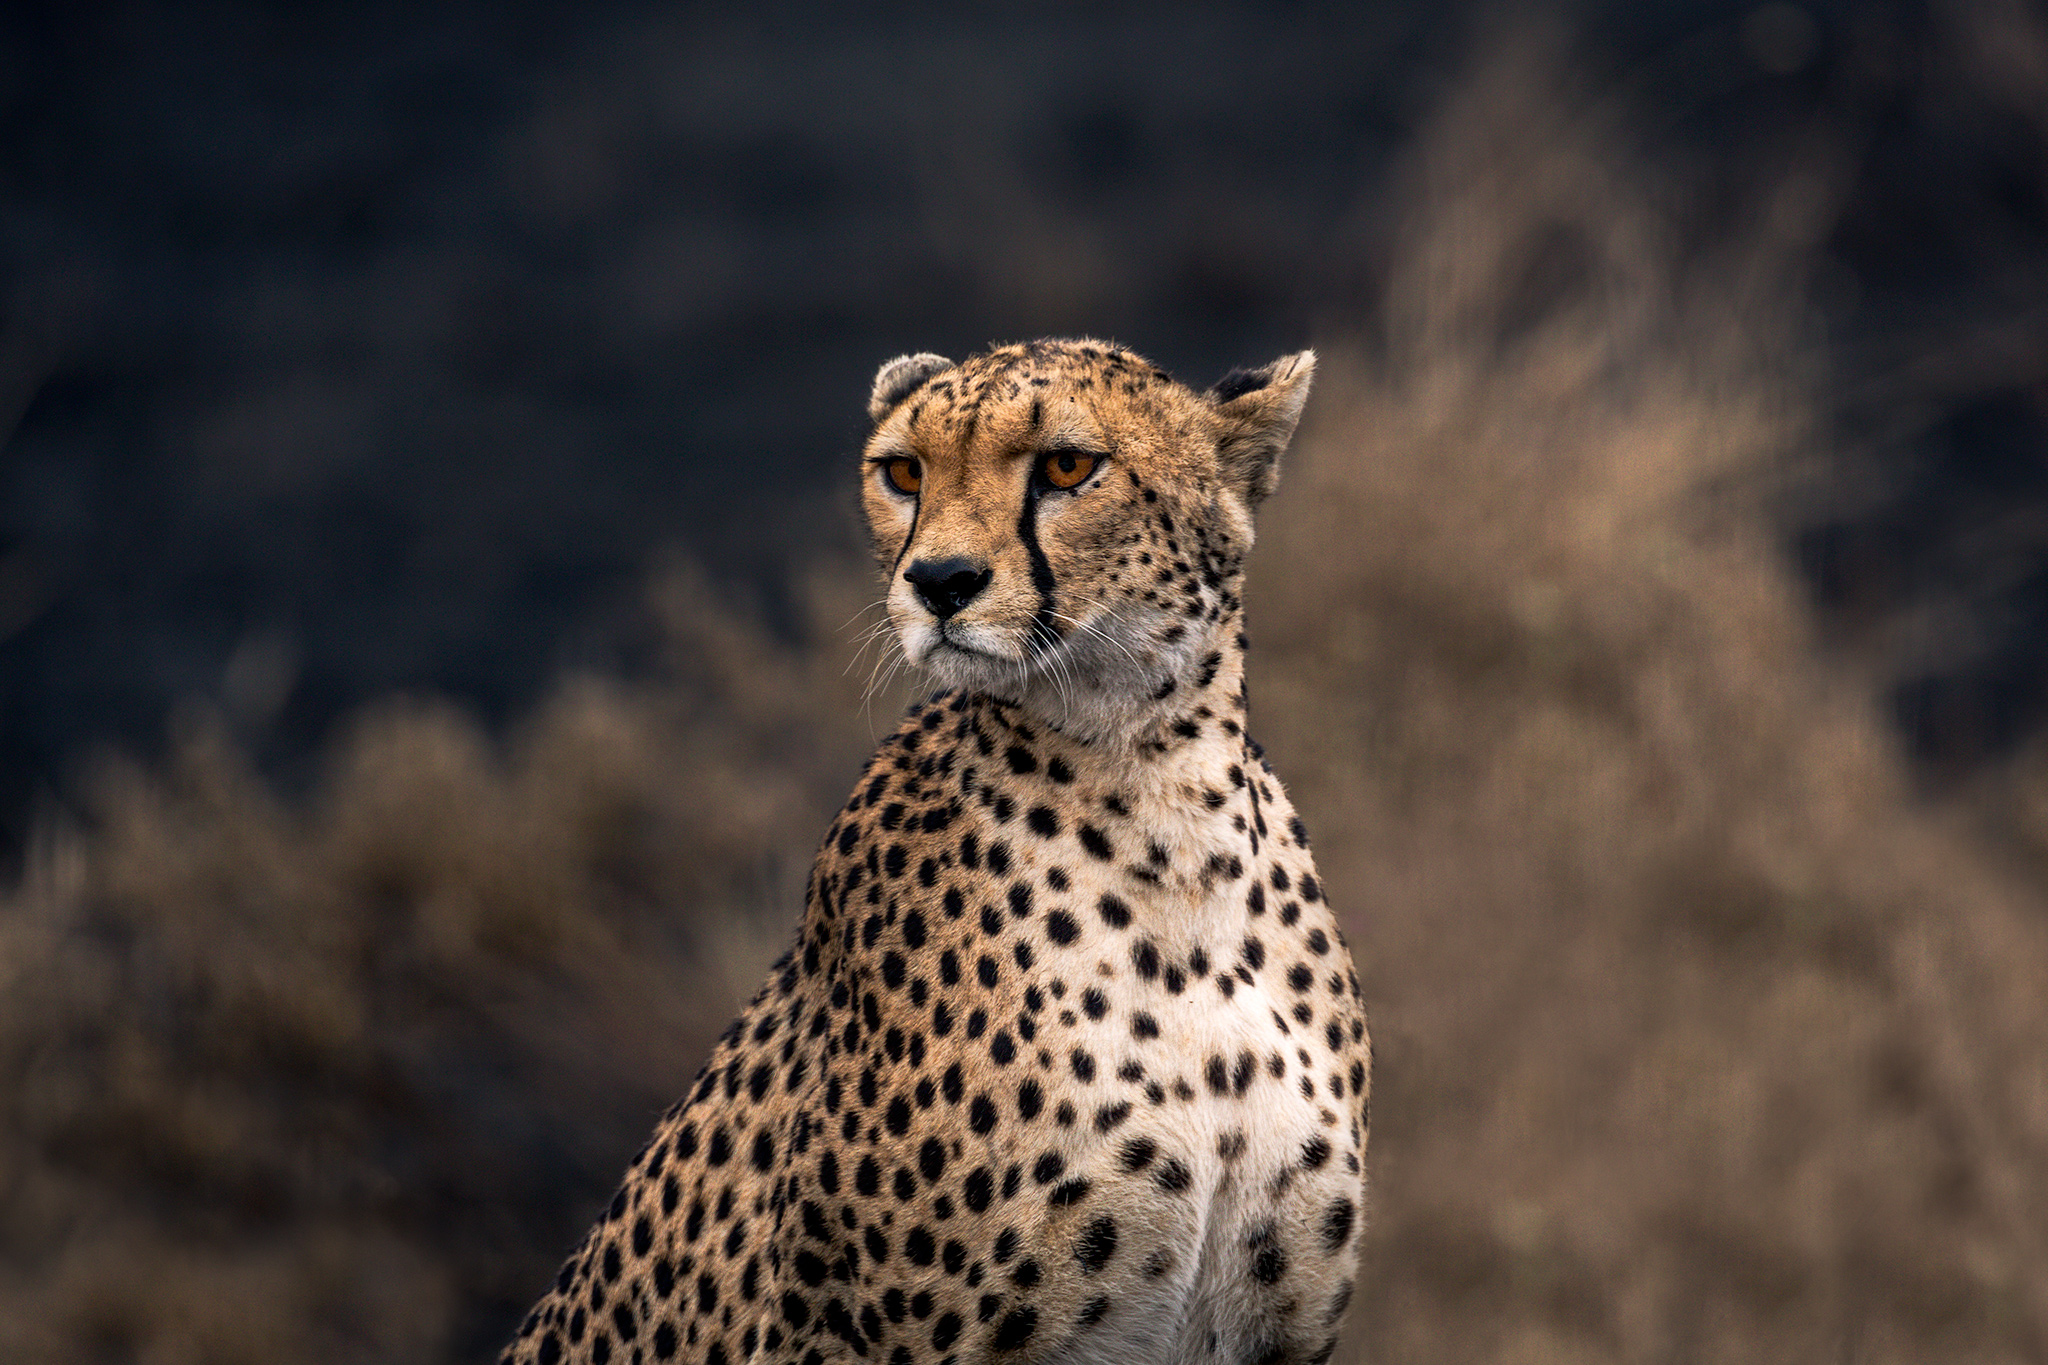 CheetahProfile_FBed.jpg